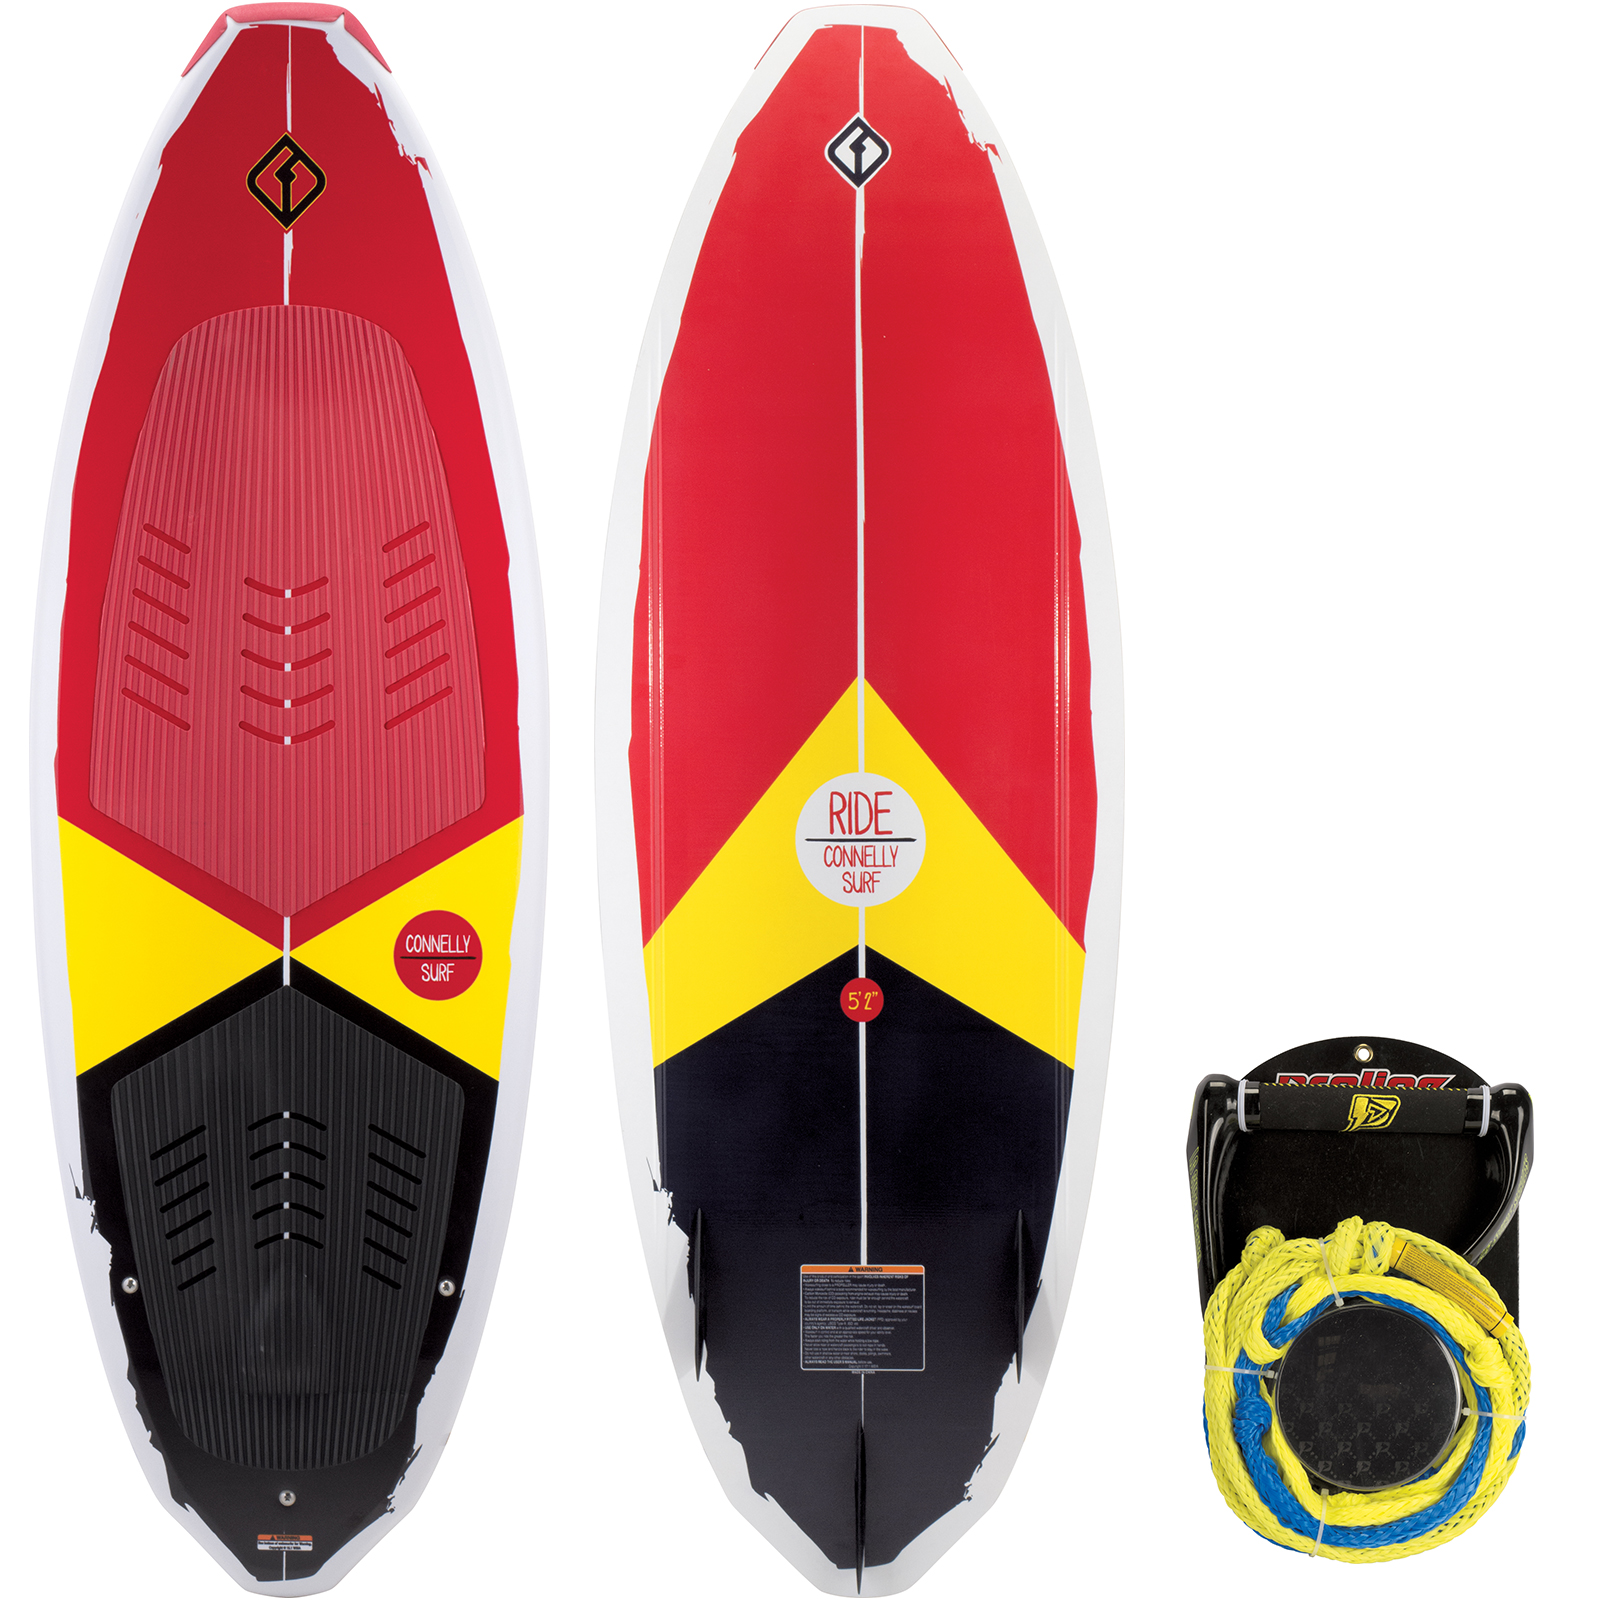 RIDE 5.2 WAKESURFER W/ROPE PACKAGE CONNELLY 2018